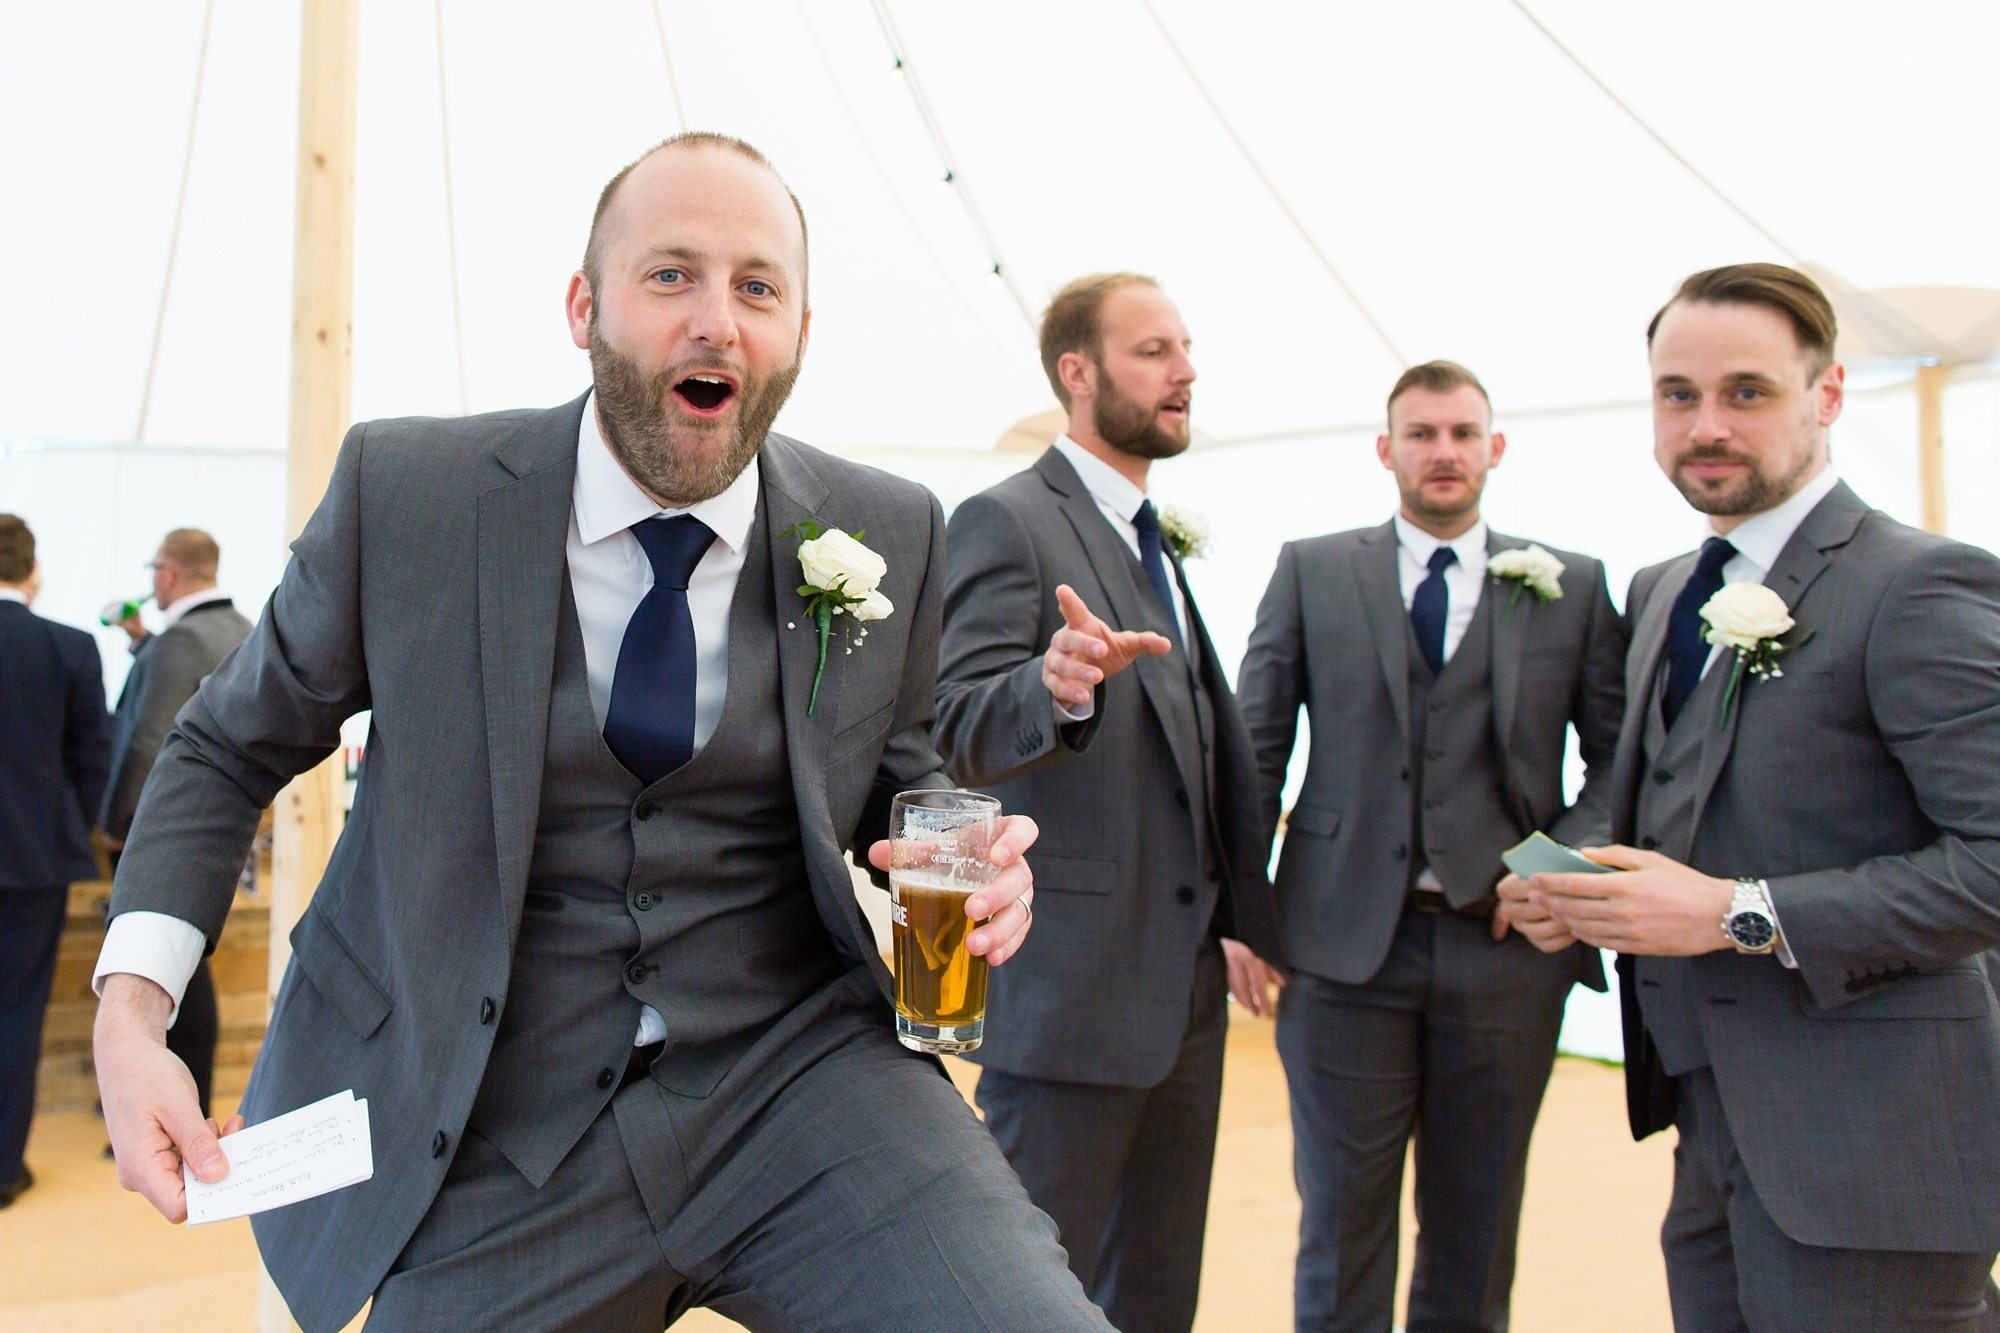 Groom Speech Advice silly beer with groomsmen